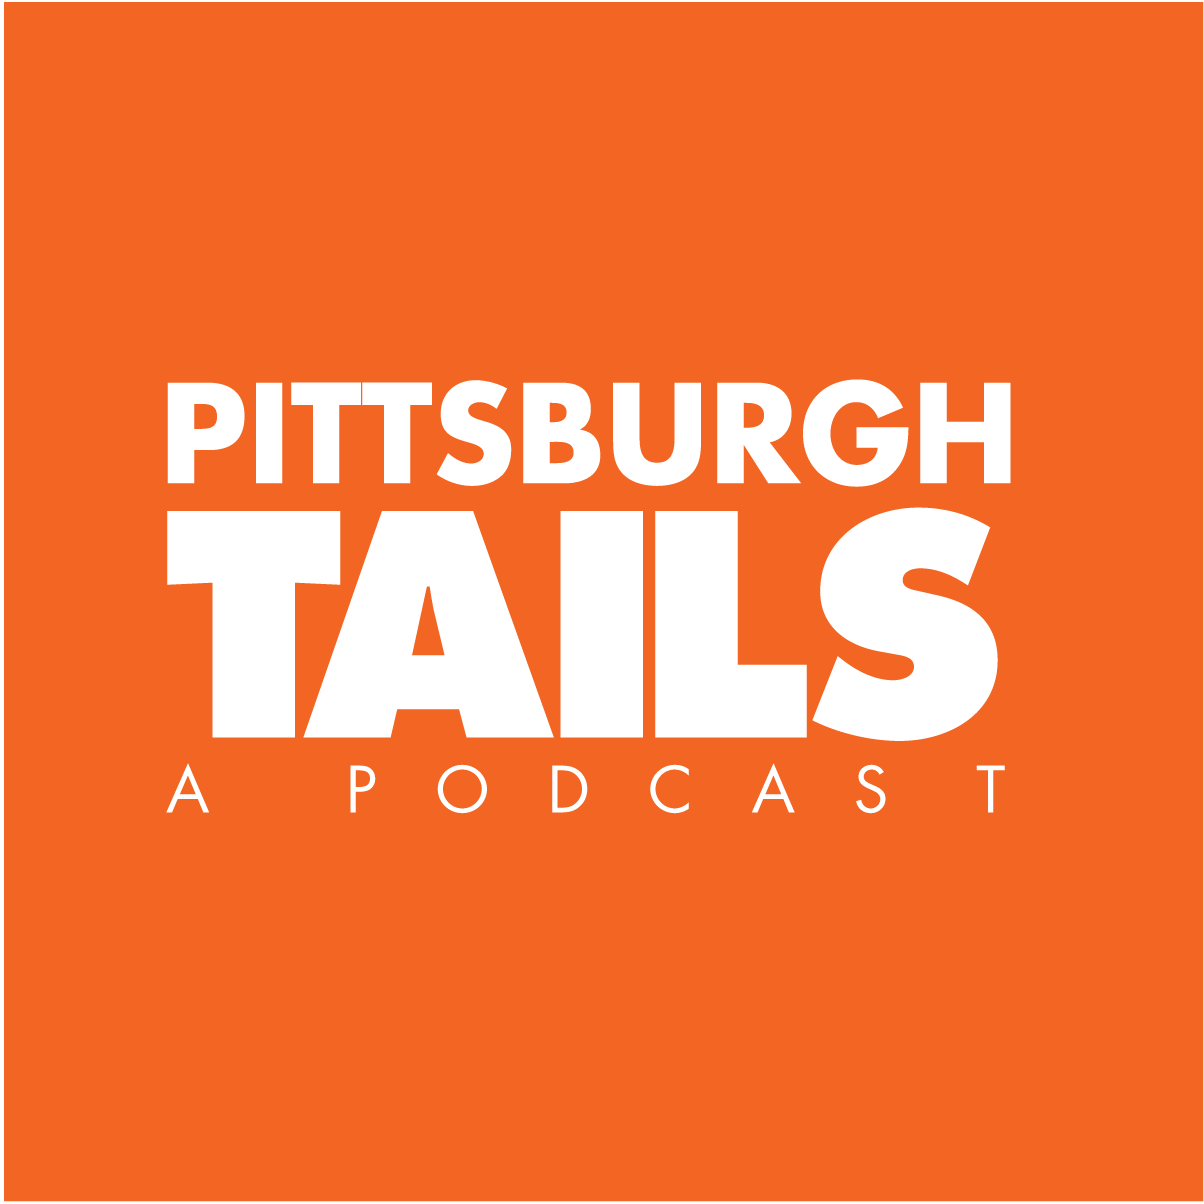 pittsburgh tails